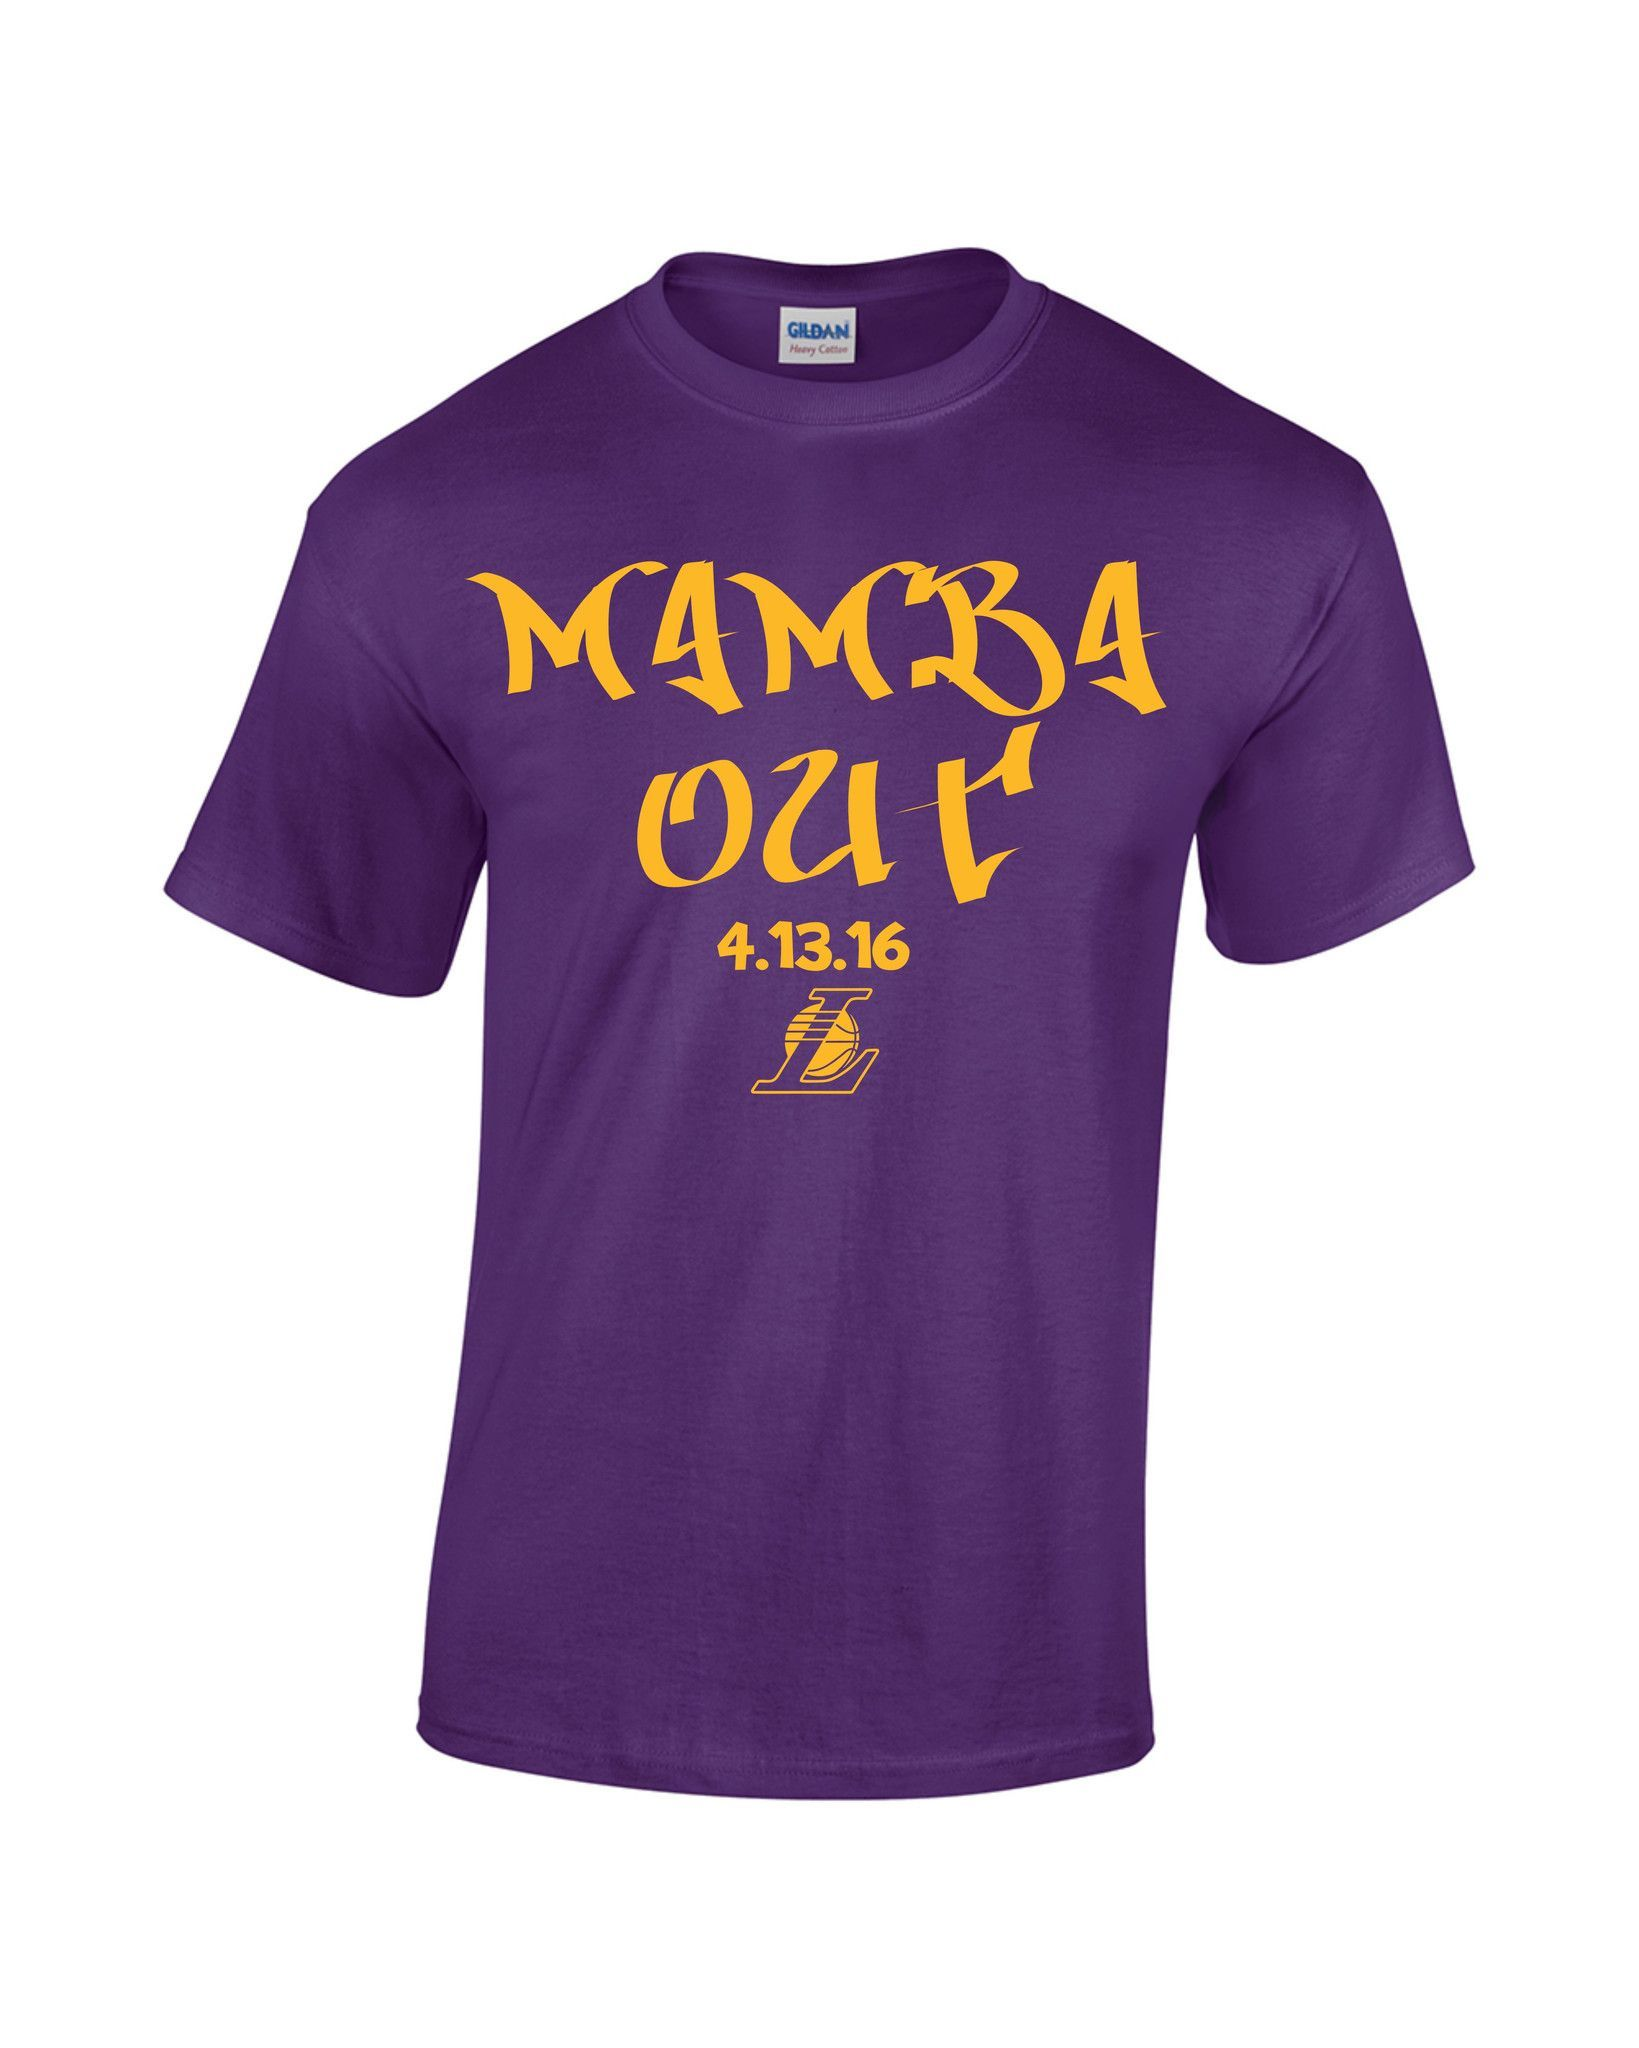 74322bb19 Kobe Bryant Mamba Out Los Angeles Lakers Retirement Legend T-Shirt Tee Sm-3x